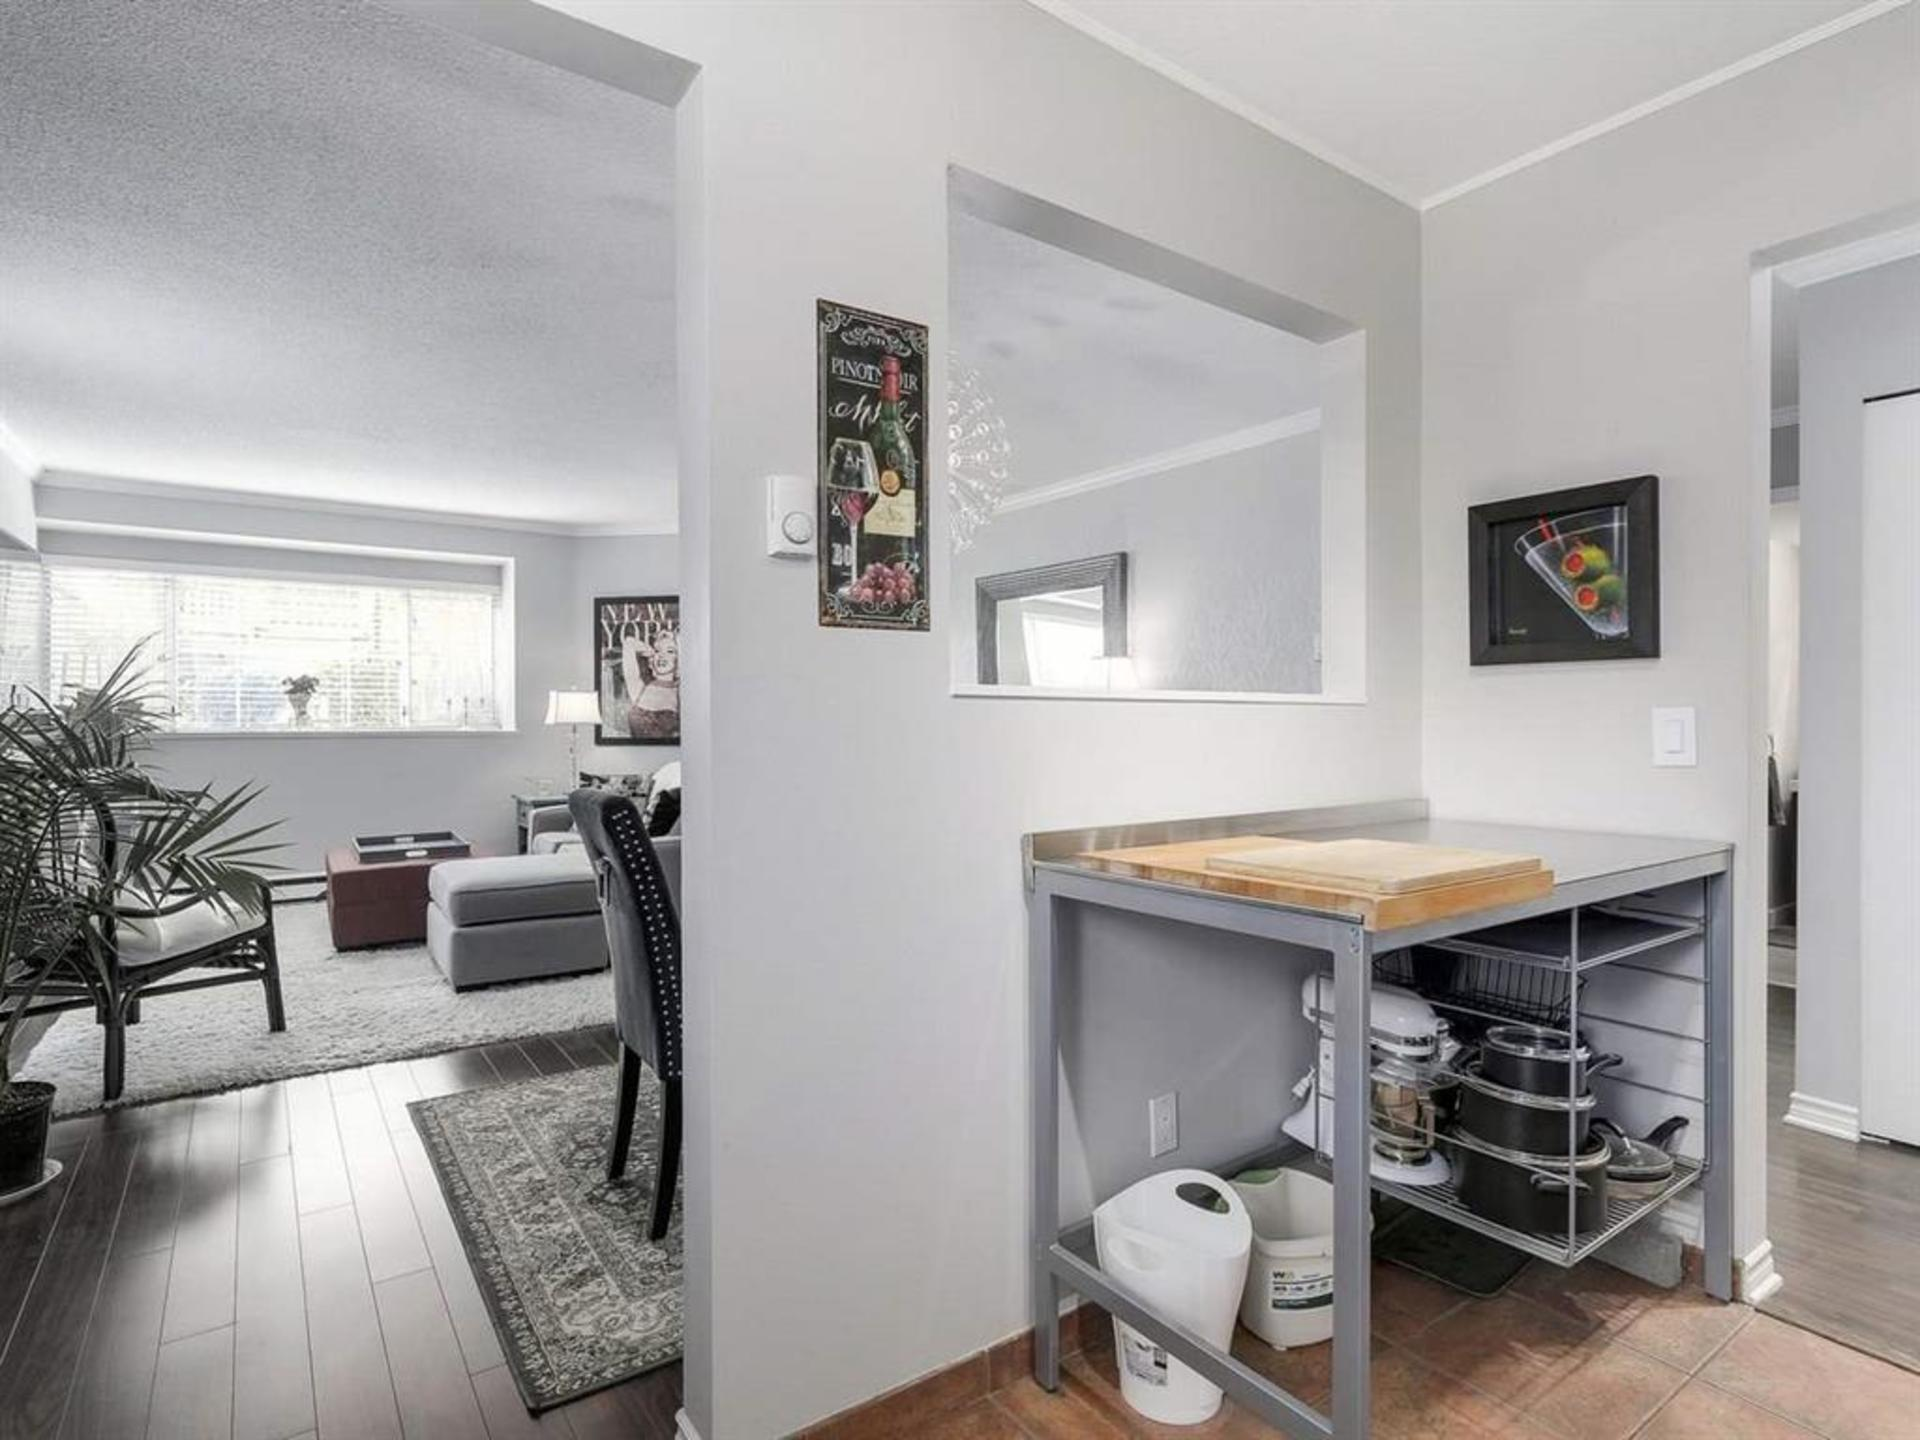 kitchen nook area at 108 - 1386 73, Marpole, Vancouver West